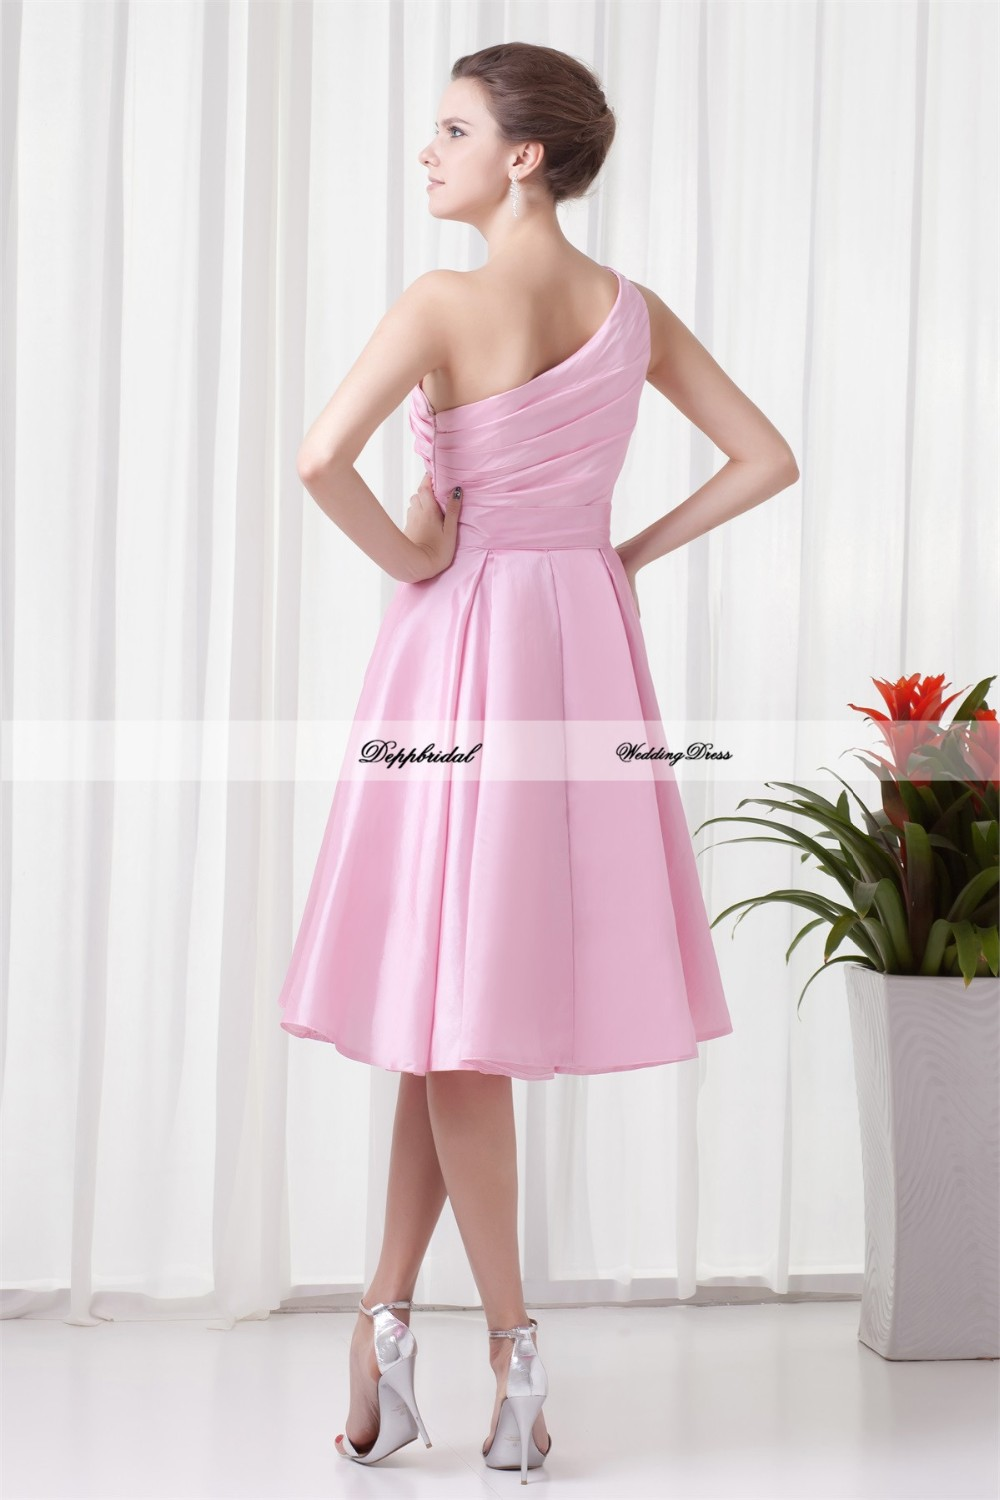 Handmade-Flower-s-A-Line-Tea-Length-One-Shoulder-Bridesmaid-Dresses-22708-80843